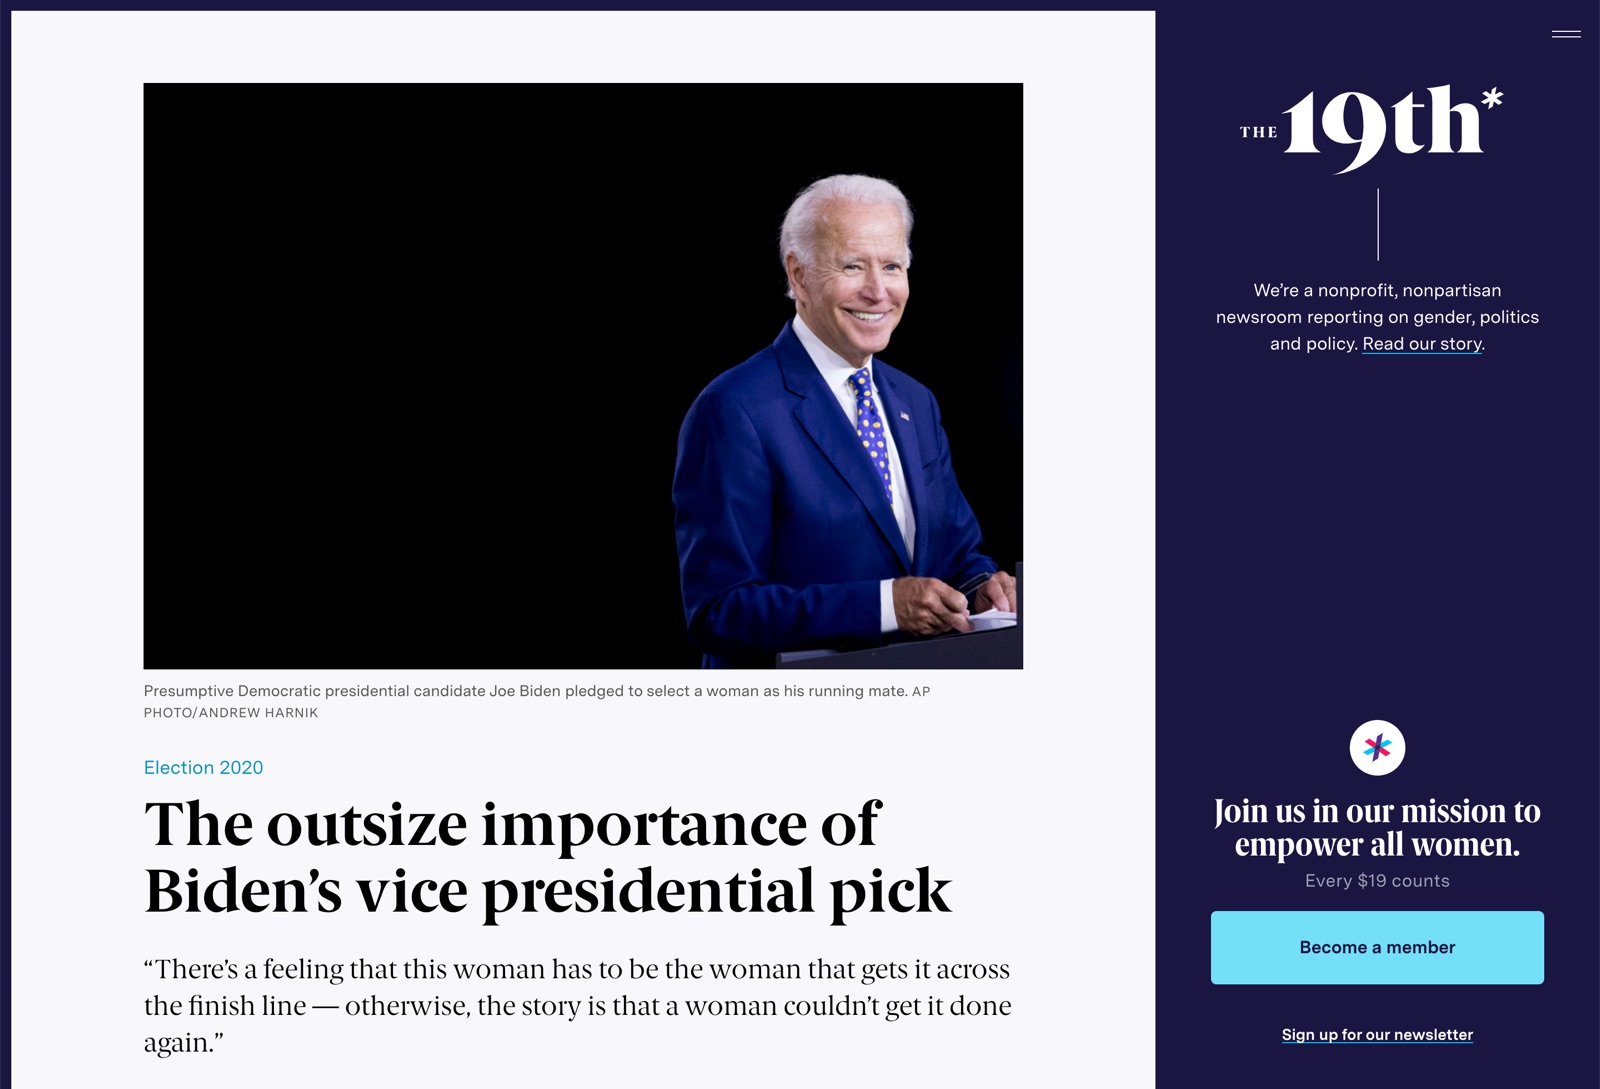 Article: The outsize importance of Biden's vice presidential pick